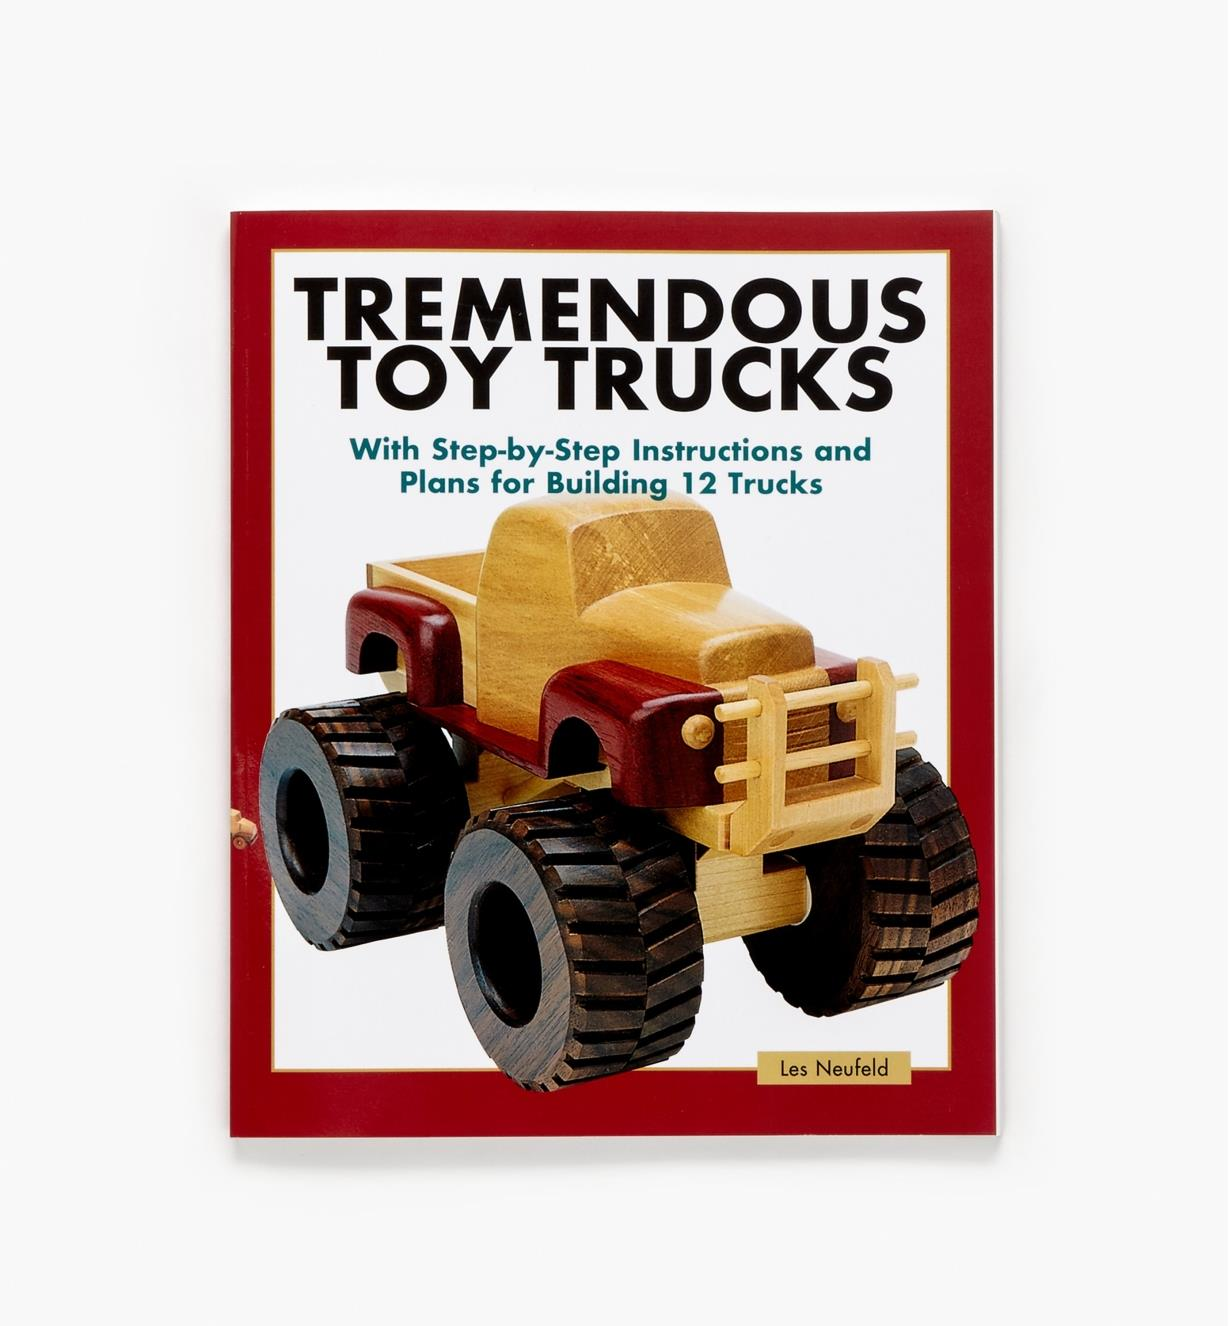 73L0227 - Tremendous Toy Trucks